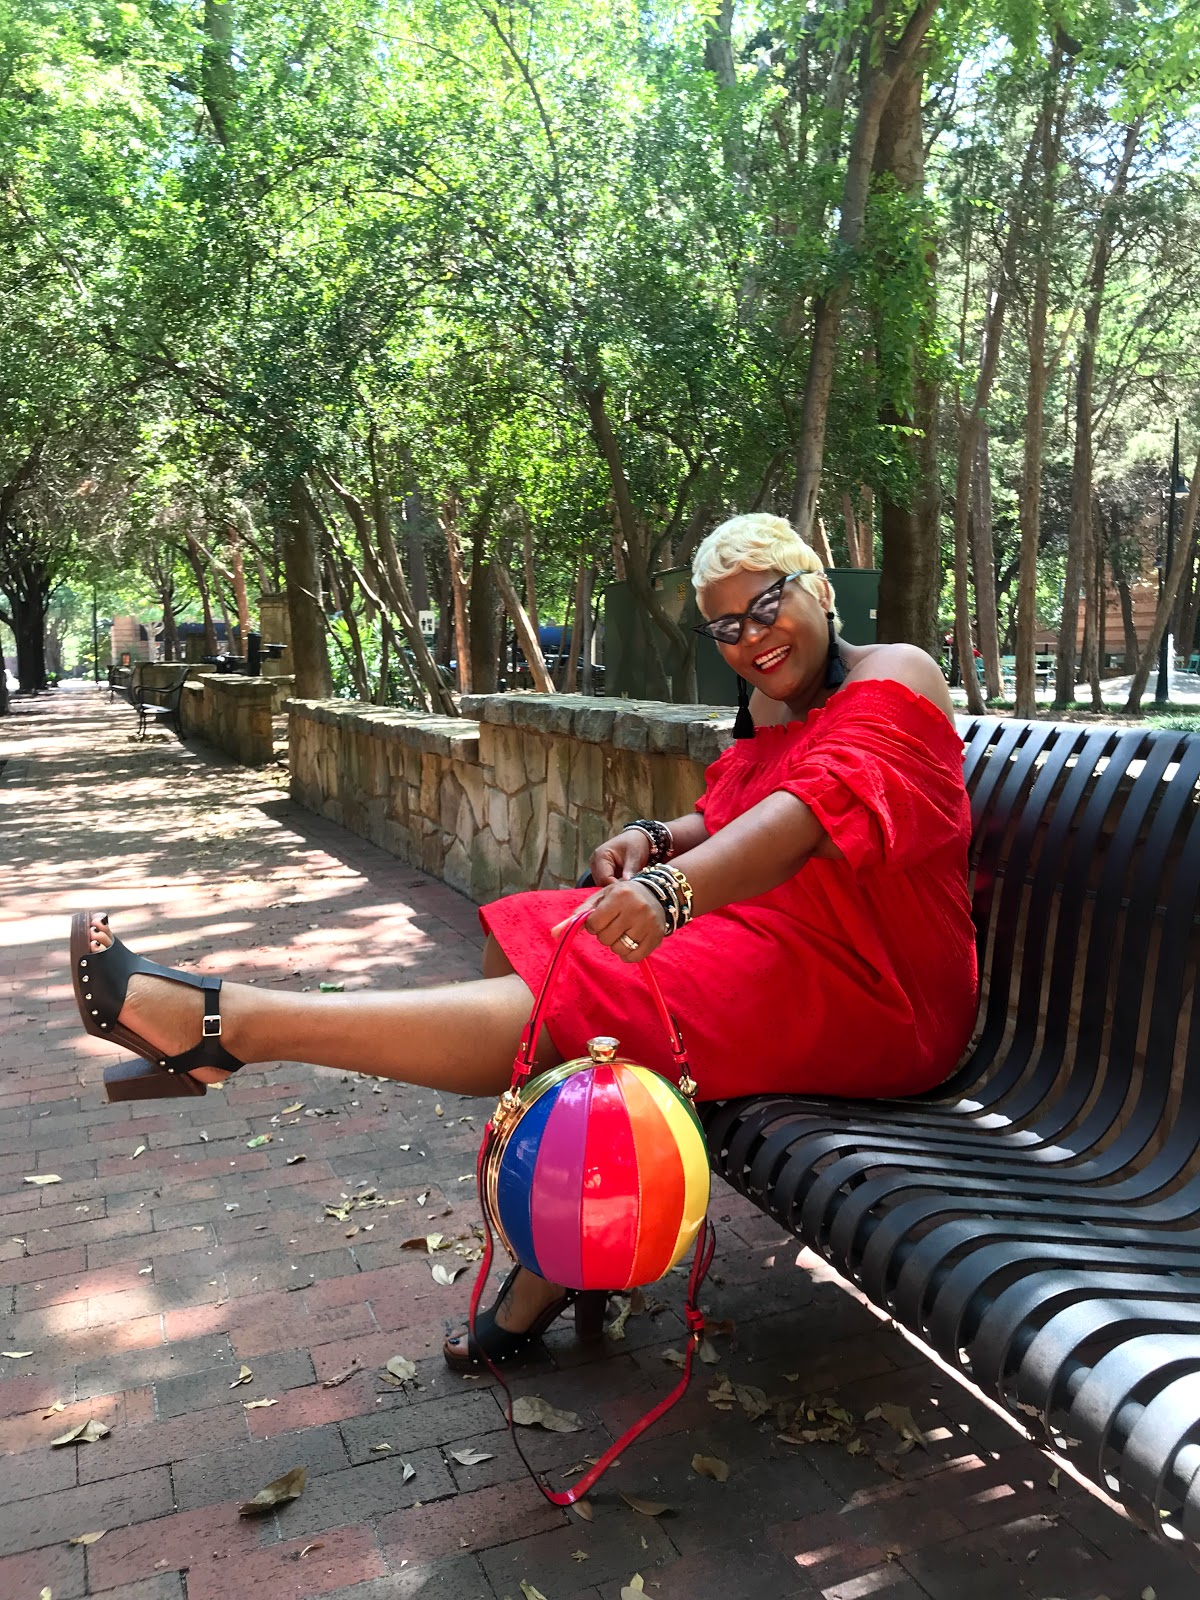 Image: Tangie Bell sharing her outfit deets in a red dress from H&M. Seen first on Bits and Babbles blog. Also talks about the heat and Cooter Brown meanings. Fun post by Tangie Bell-Judge My Style